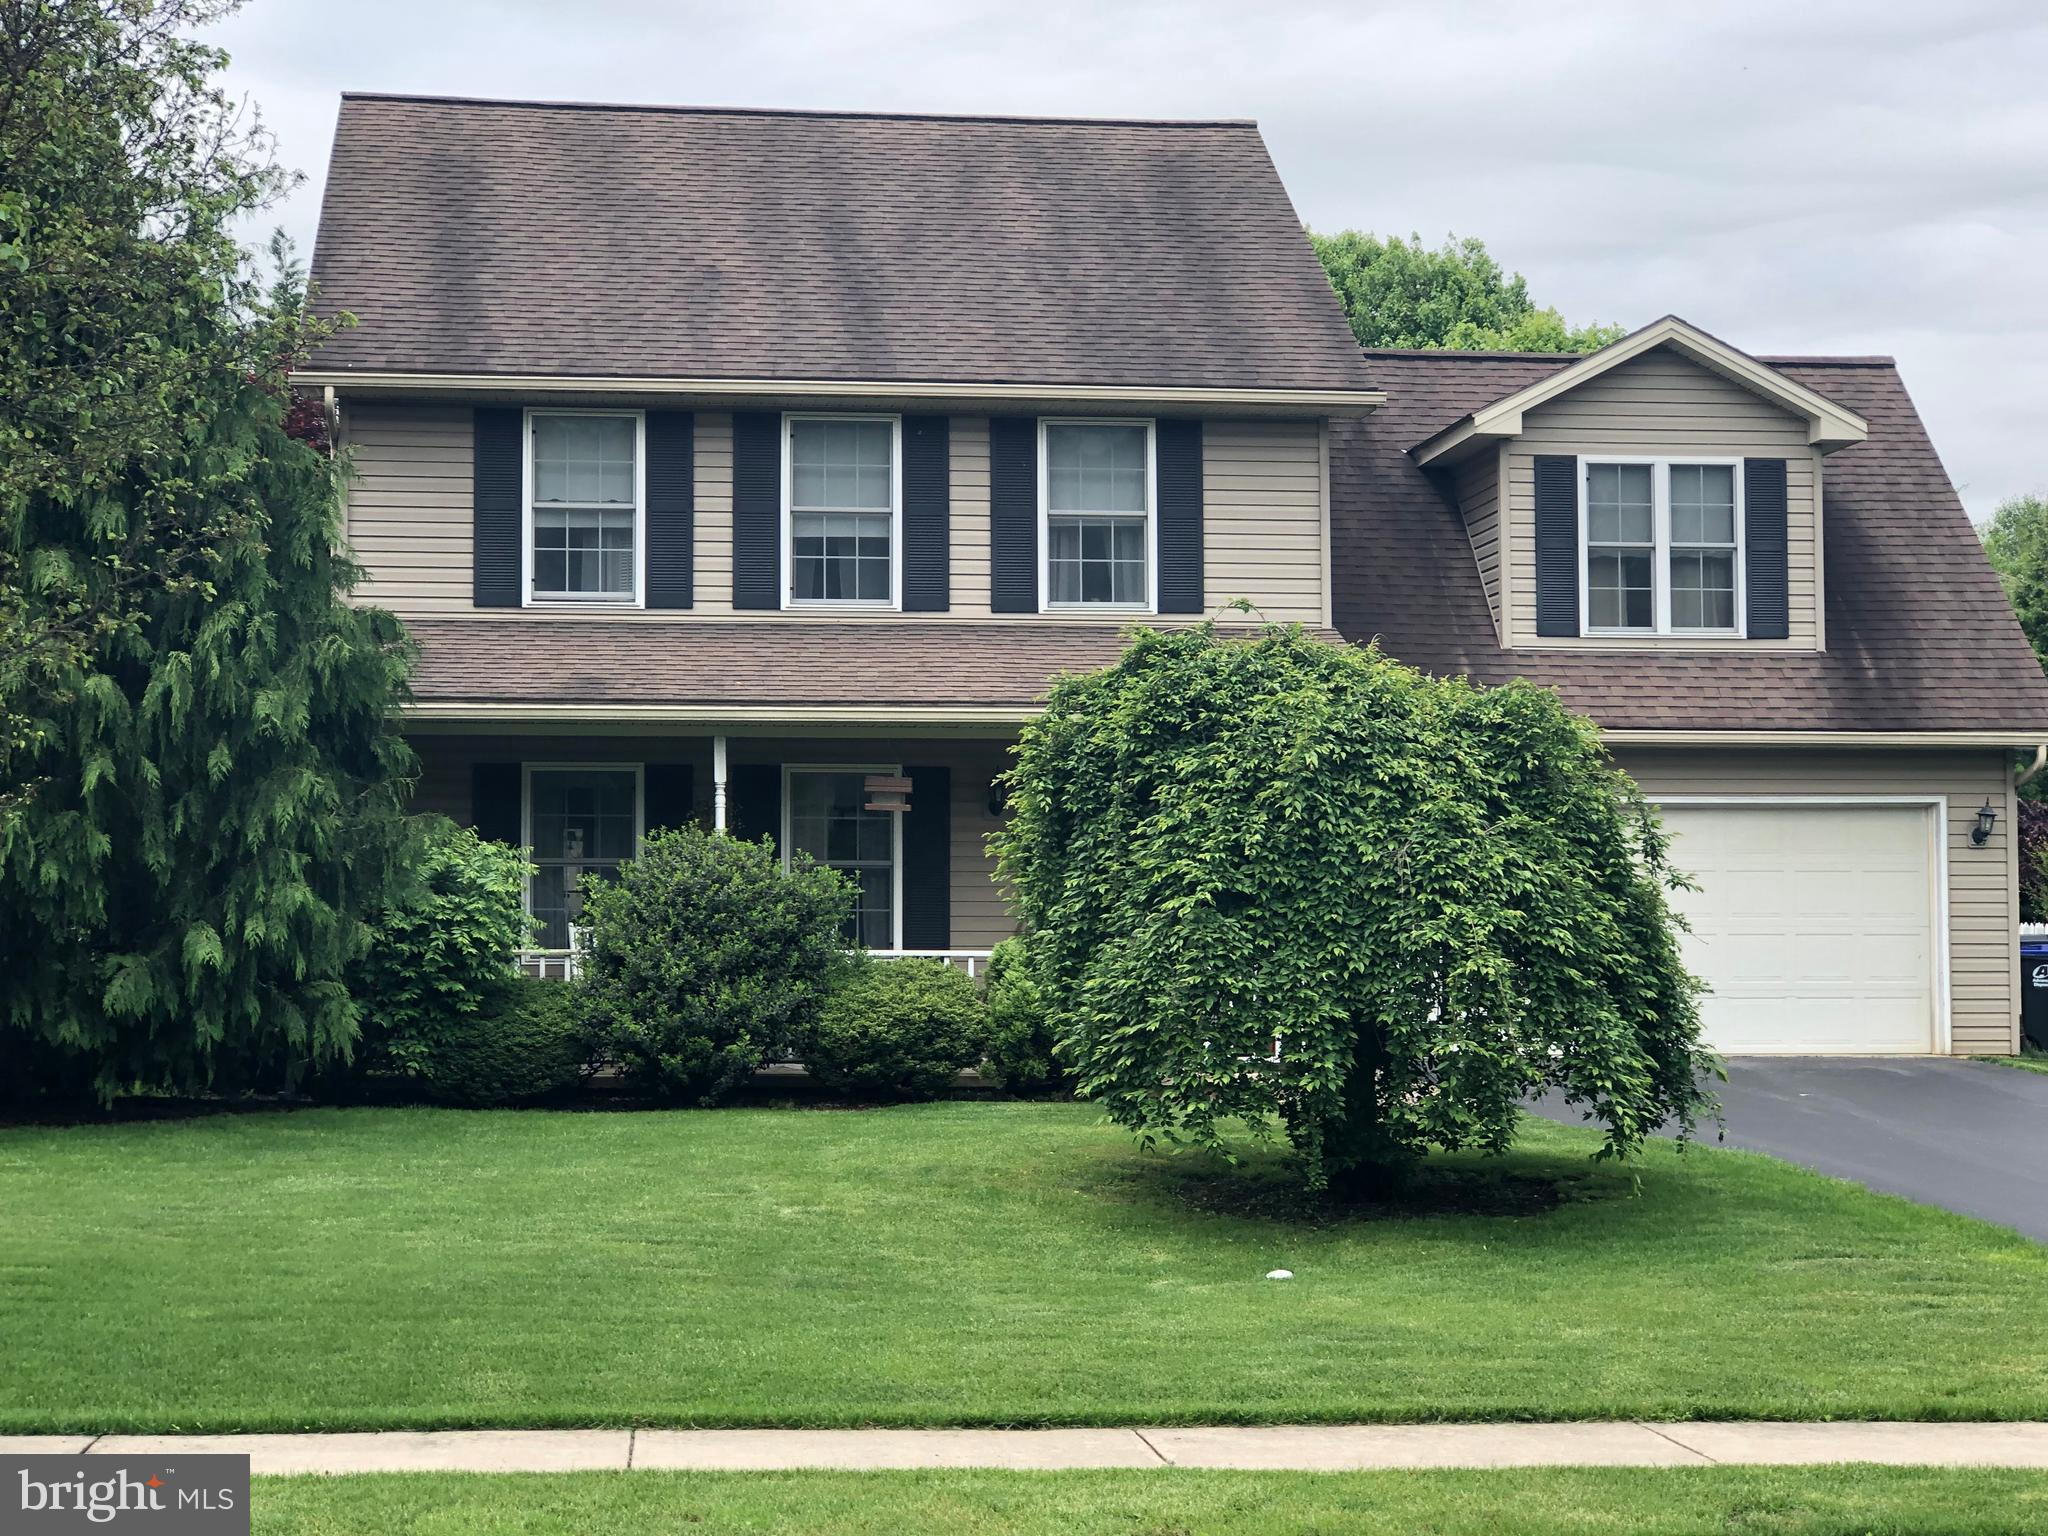 19 WOODVIEW DRIVE, MOUNT HOLLY SPRINGS, PA 17065